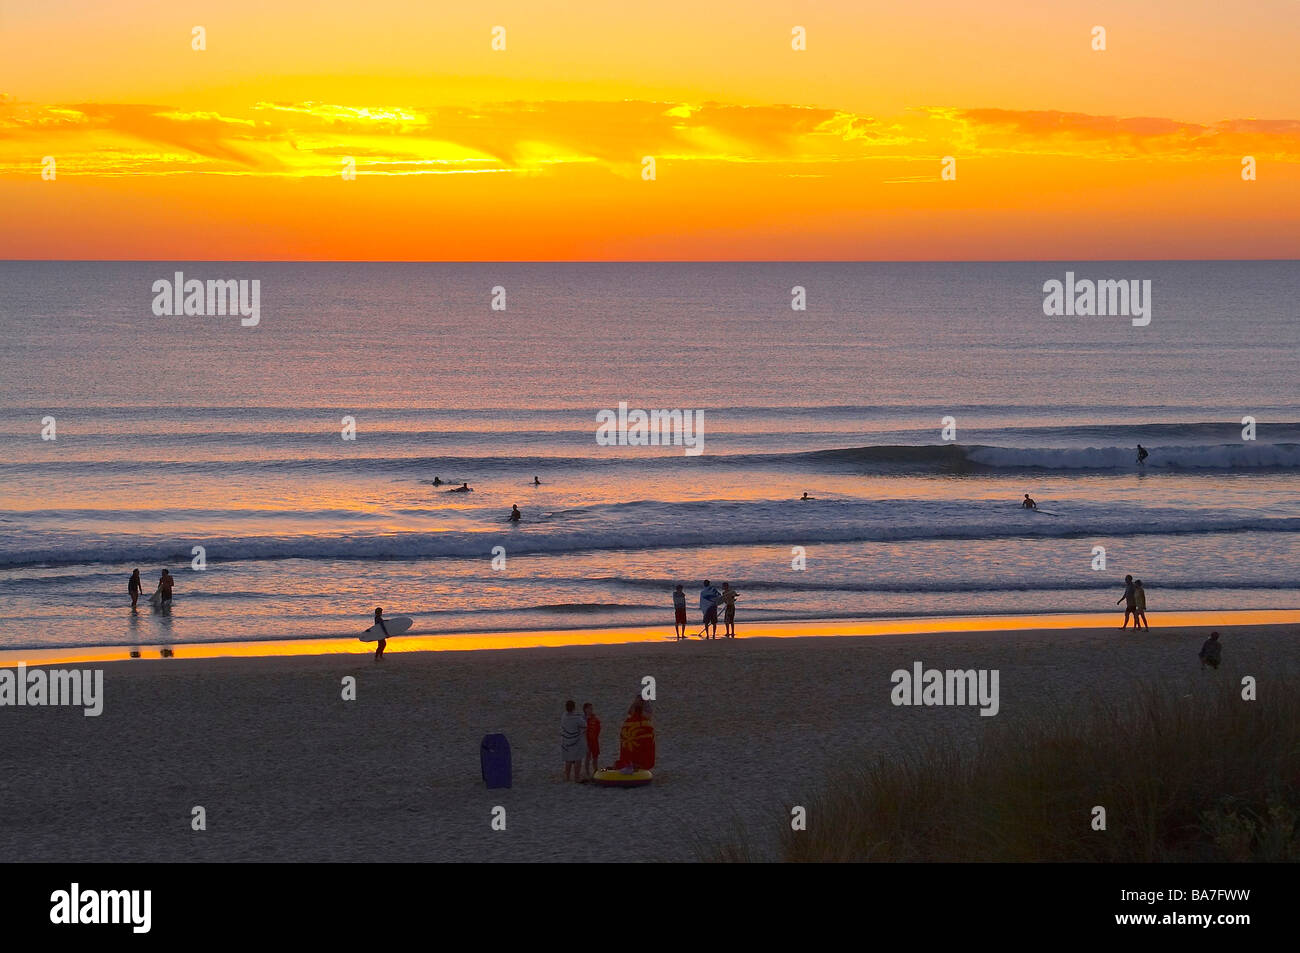 Evening at the beach of Carcans Plage, dept Gironde, France, Europe - Stock Image